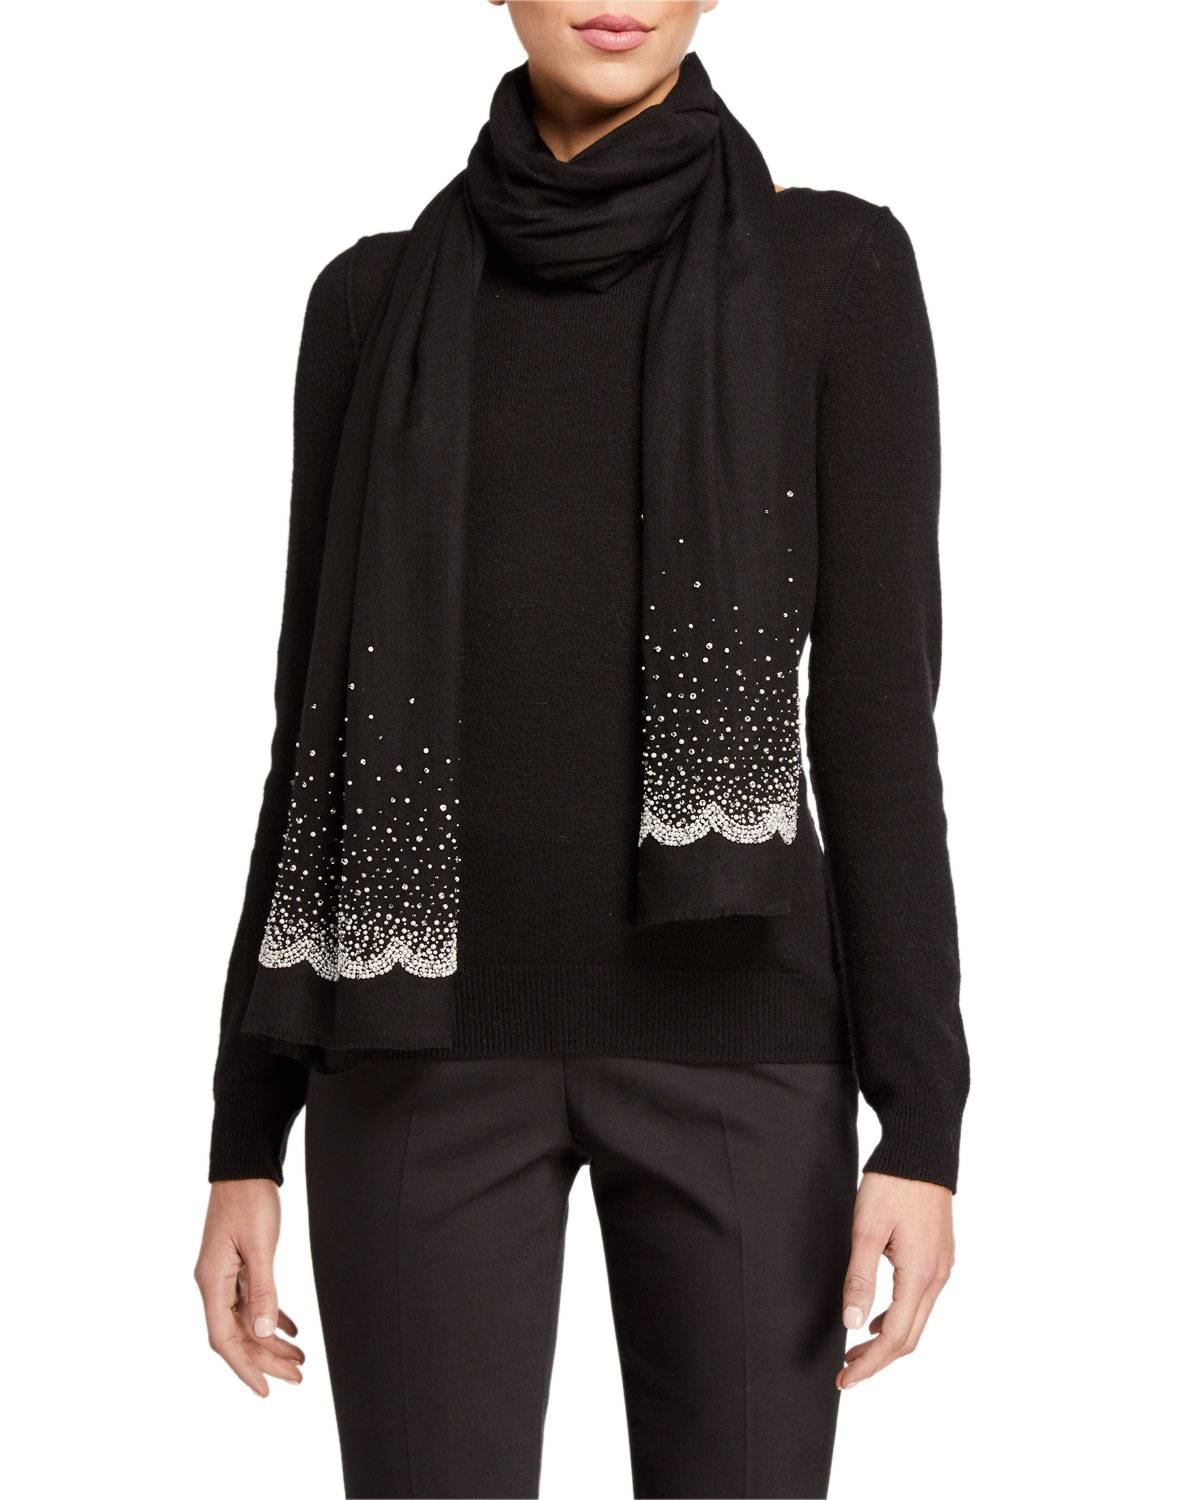 K Janavi Diffused Sparkle Beaded Cashmere Scarf